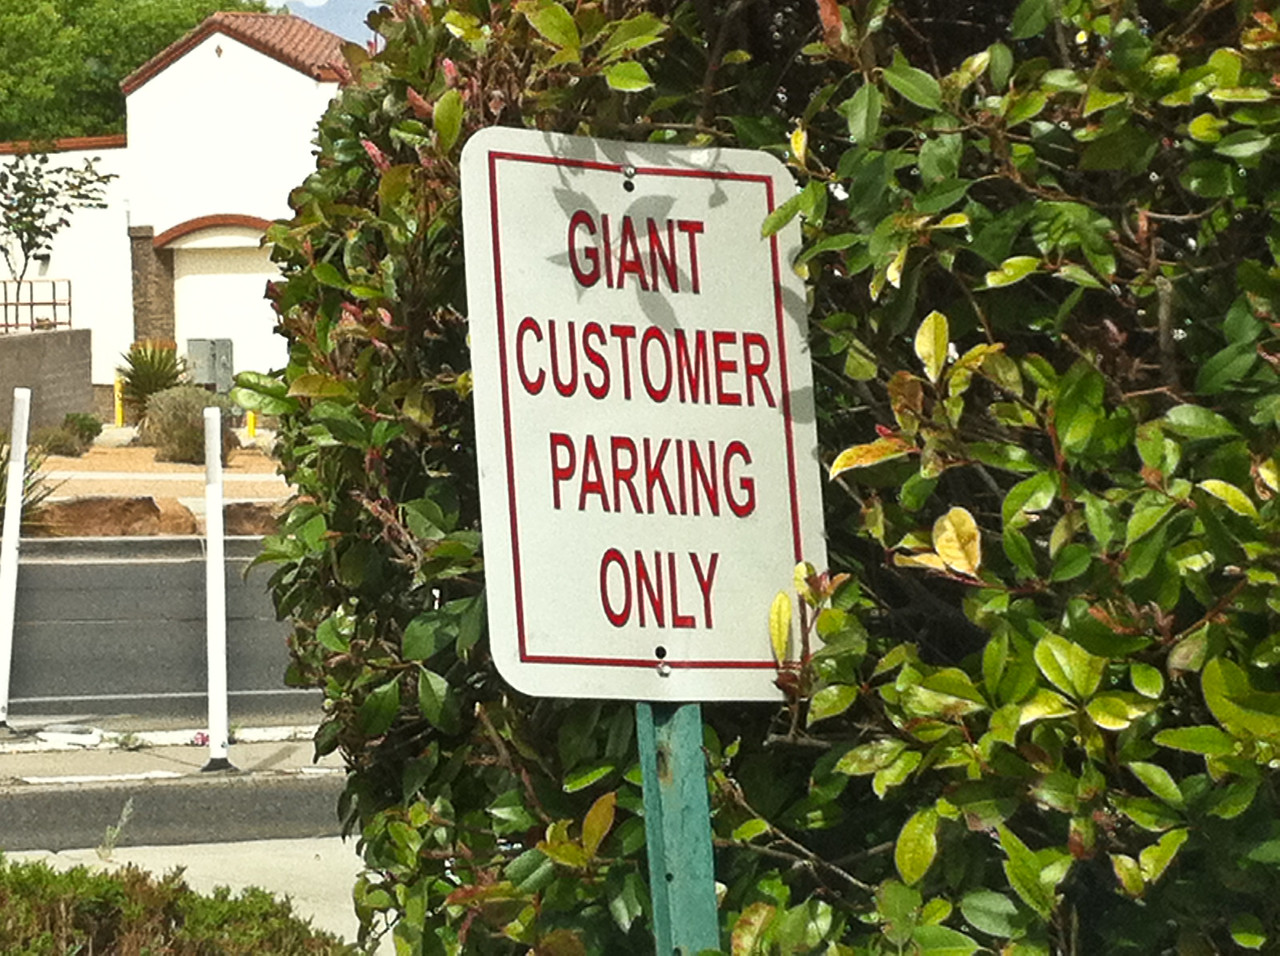 Giant Customer Parking Only [Normal sized customers are not allowed.]